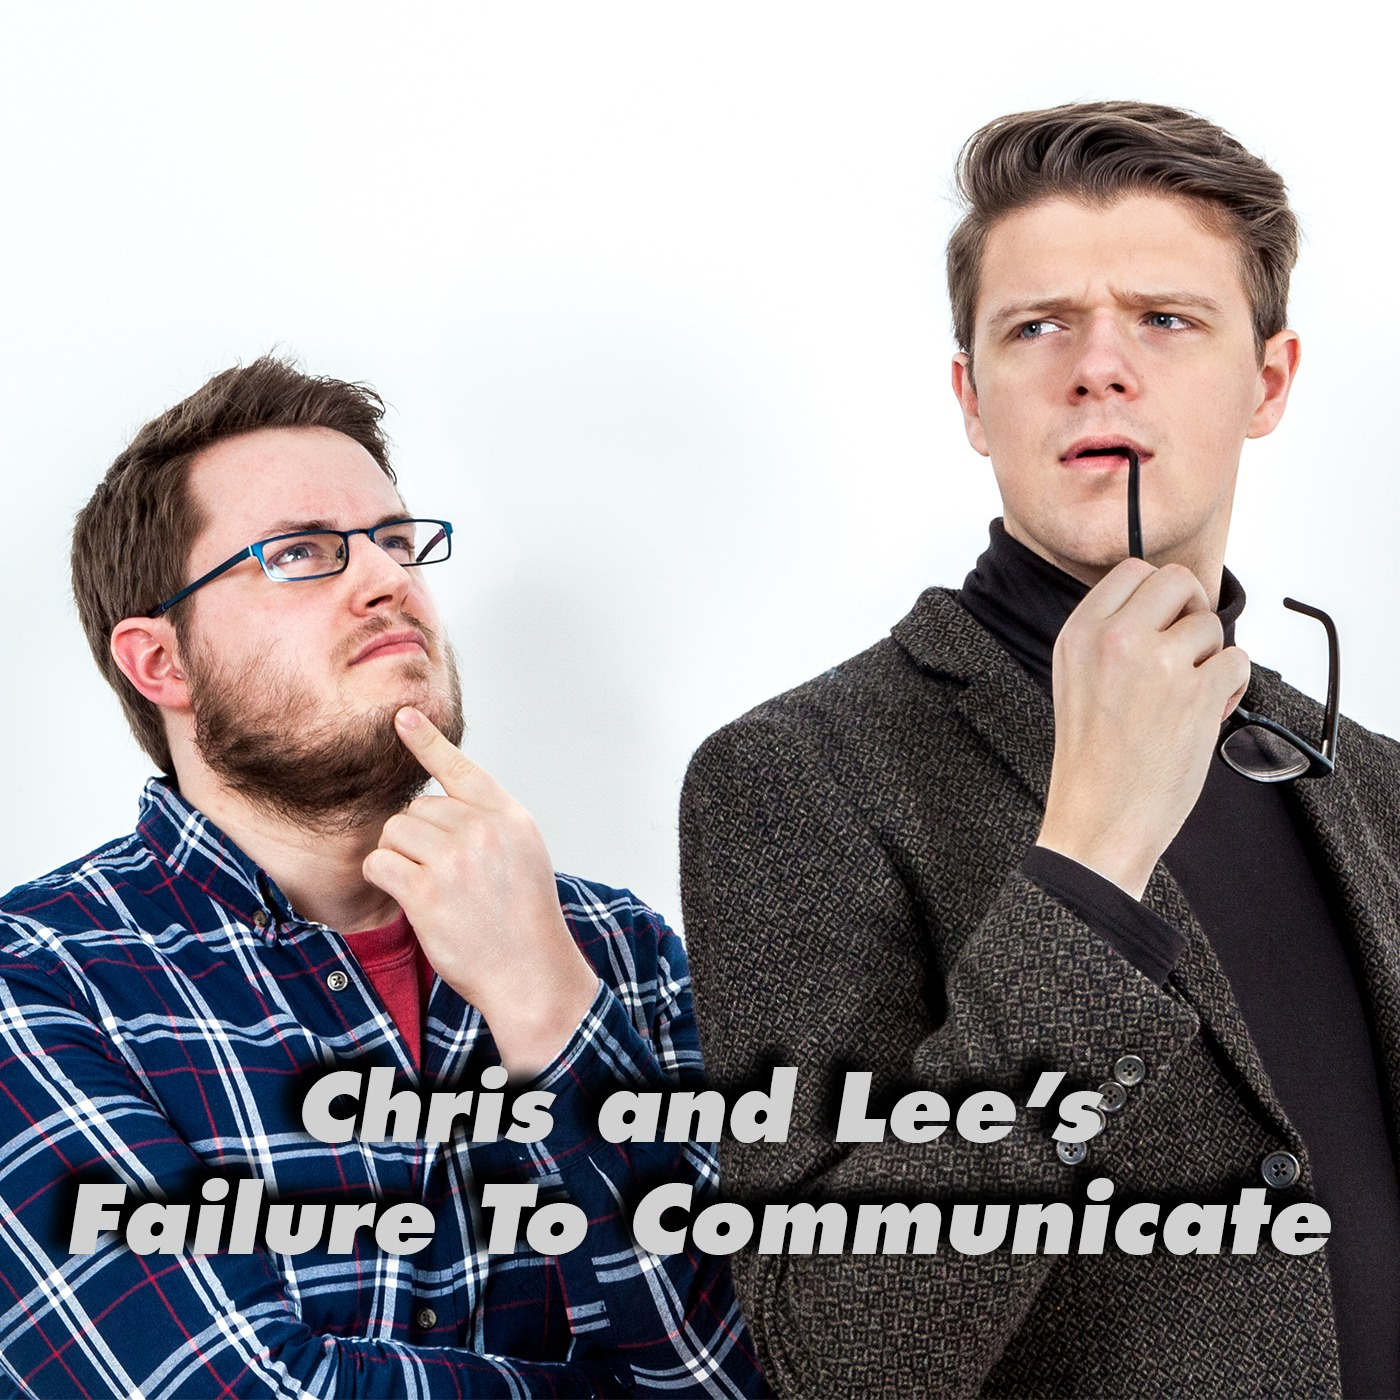 Chris And Lee's 'Failure To Communicate'